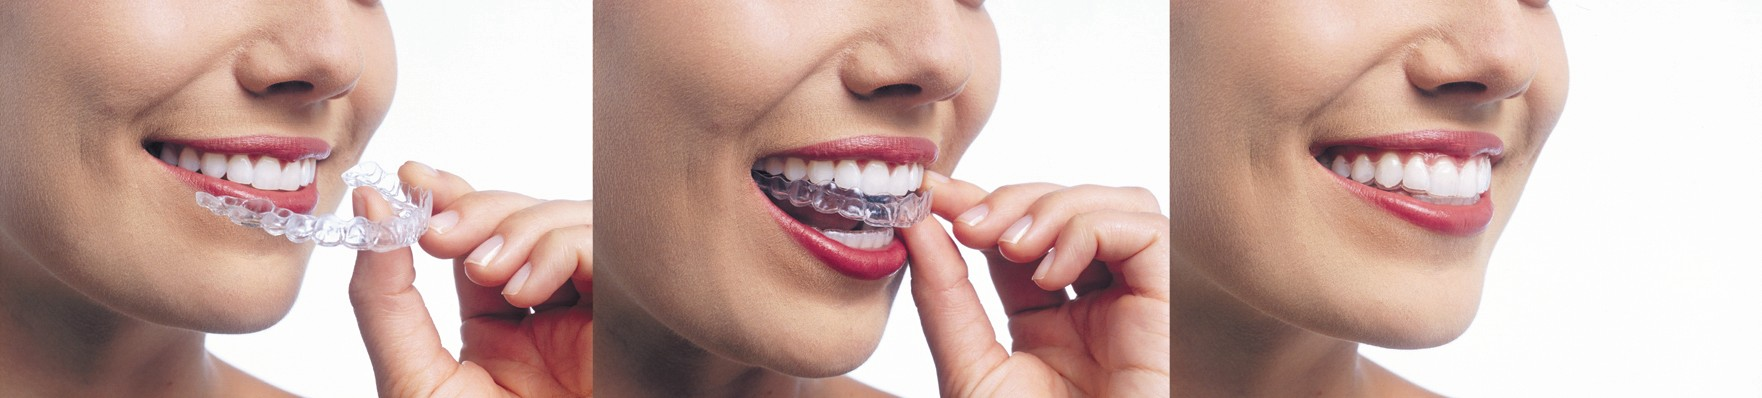 Invisalign Clear Braces In White Plains